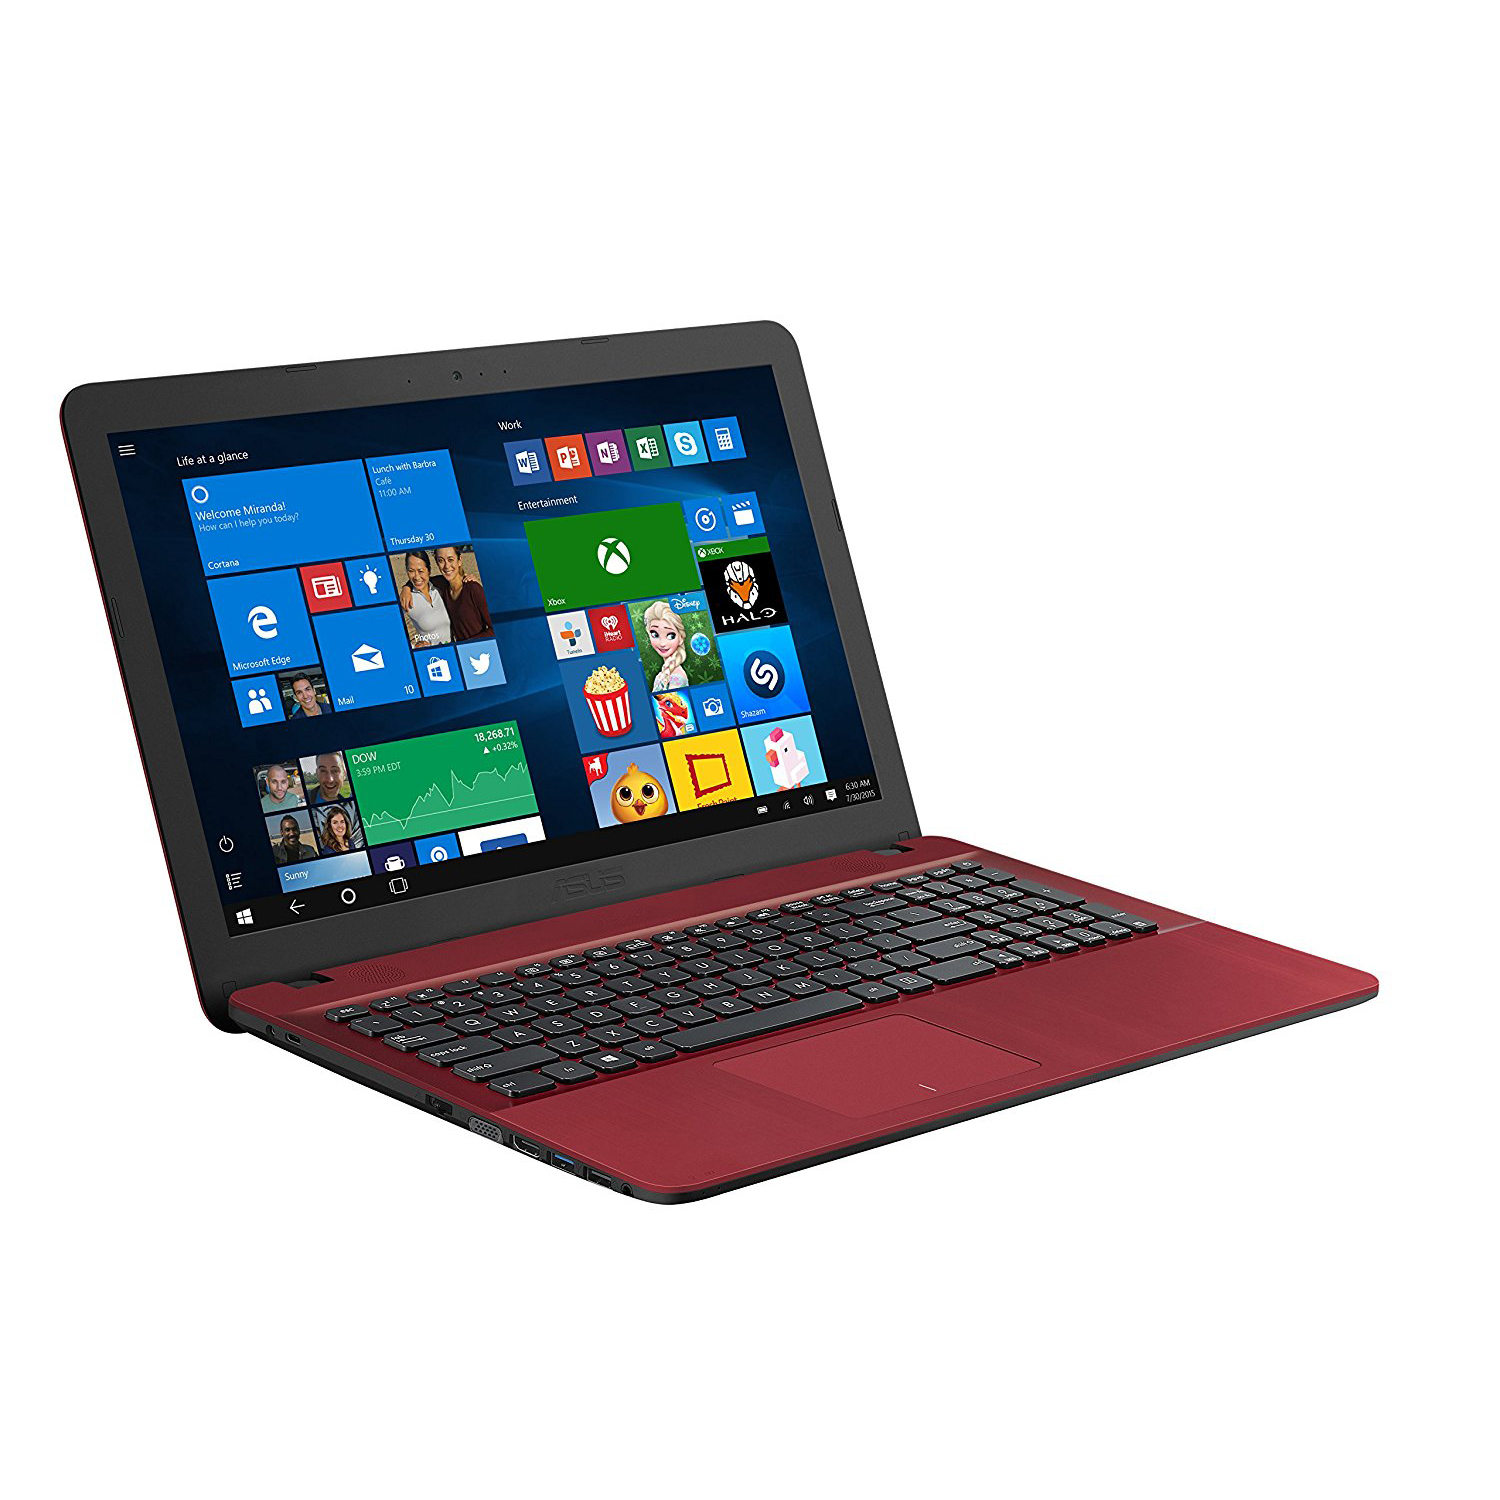 ASUS Vivobook 15 Red, Intel Quad-Core Pentium N4200 Processor, Touchscreen, 4GB RAM, 500GB Hard Drive, Windows 10 Home